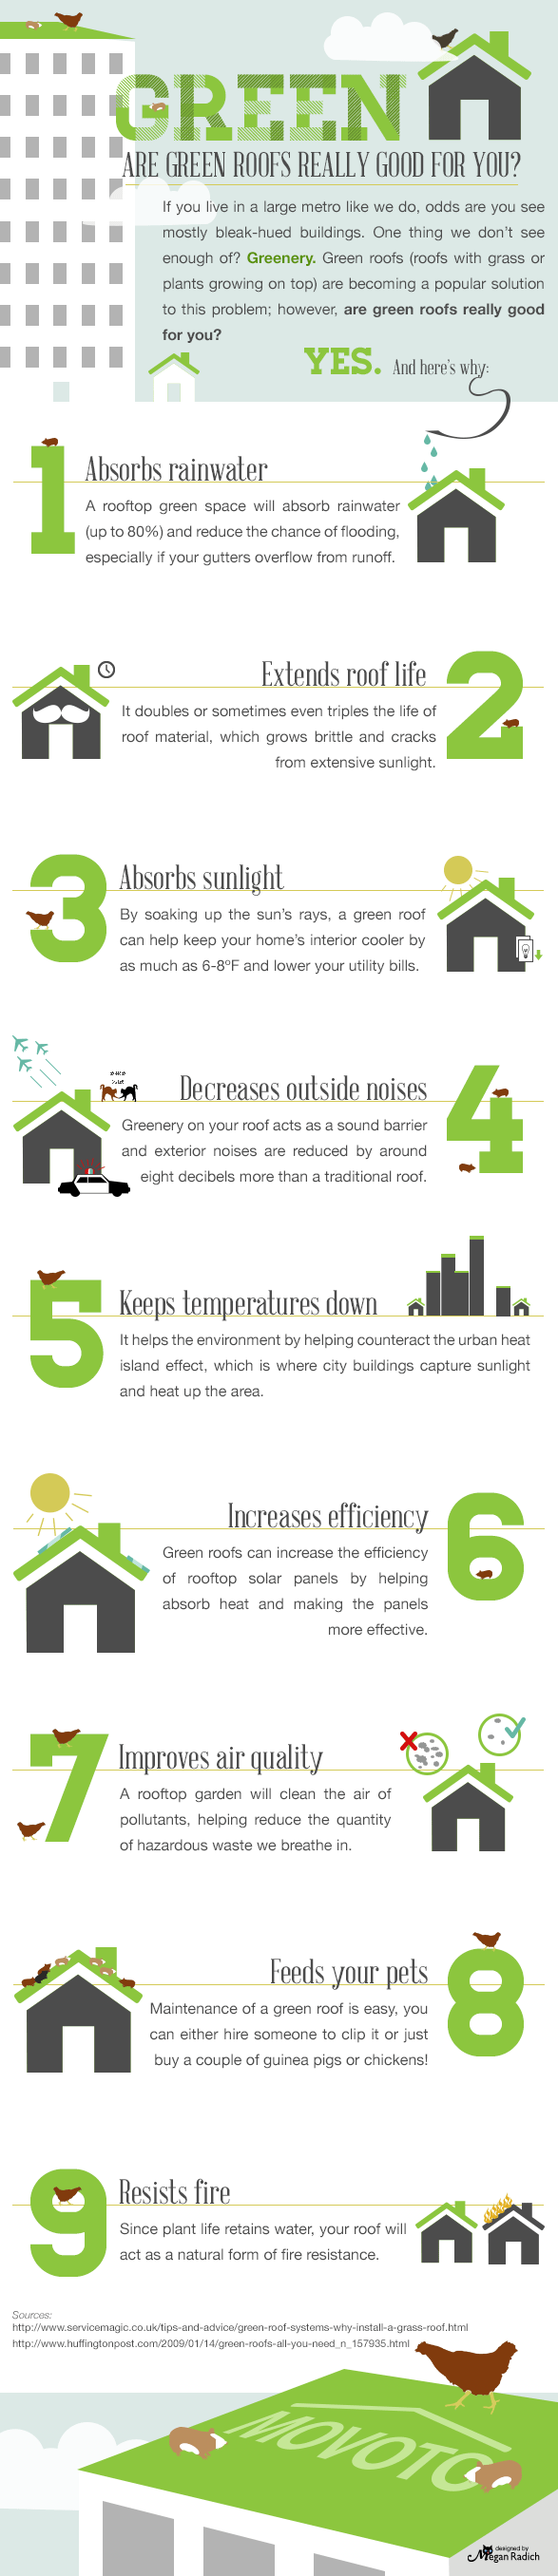 under green roof-Infographic